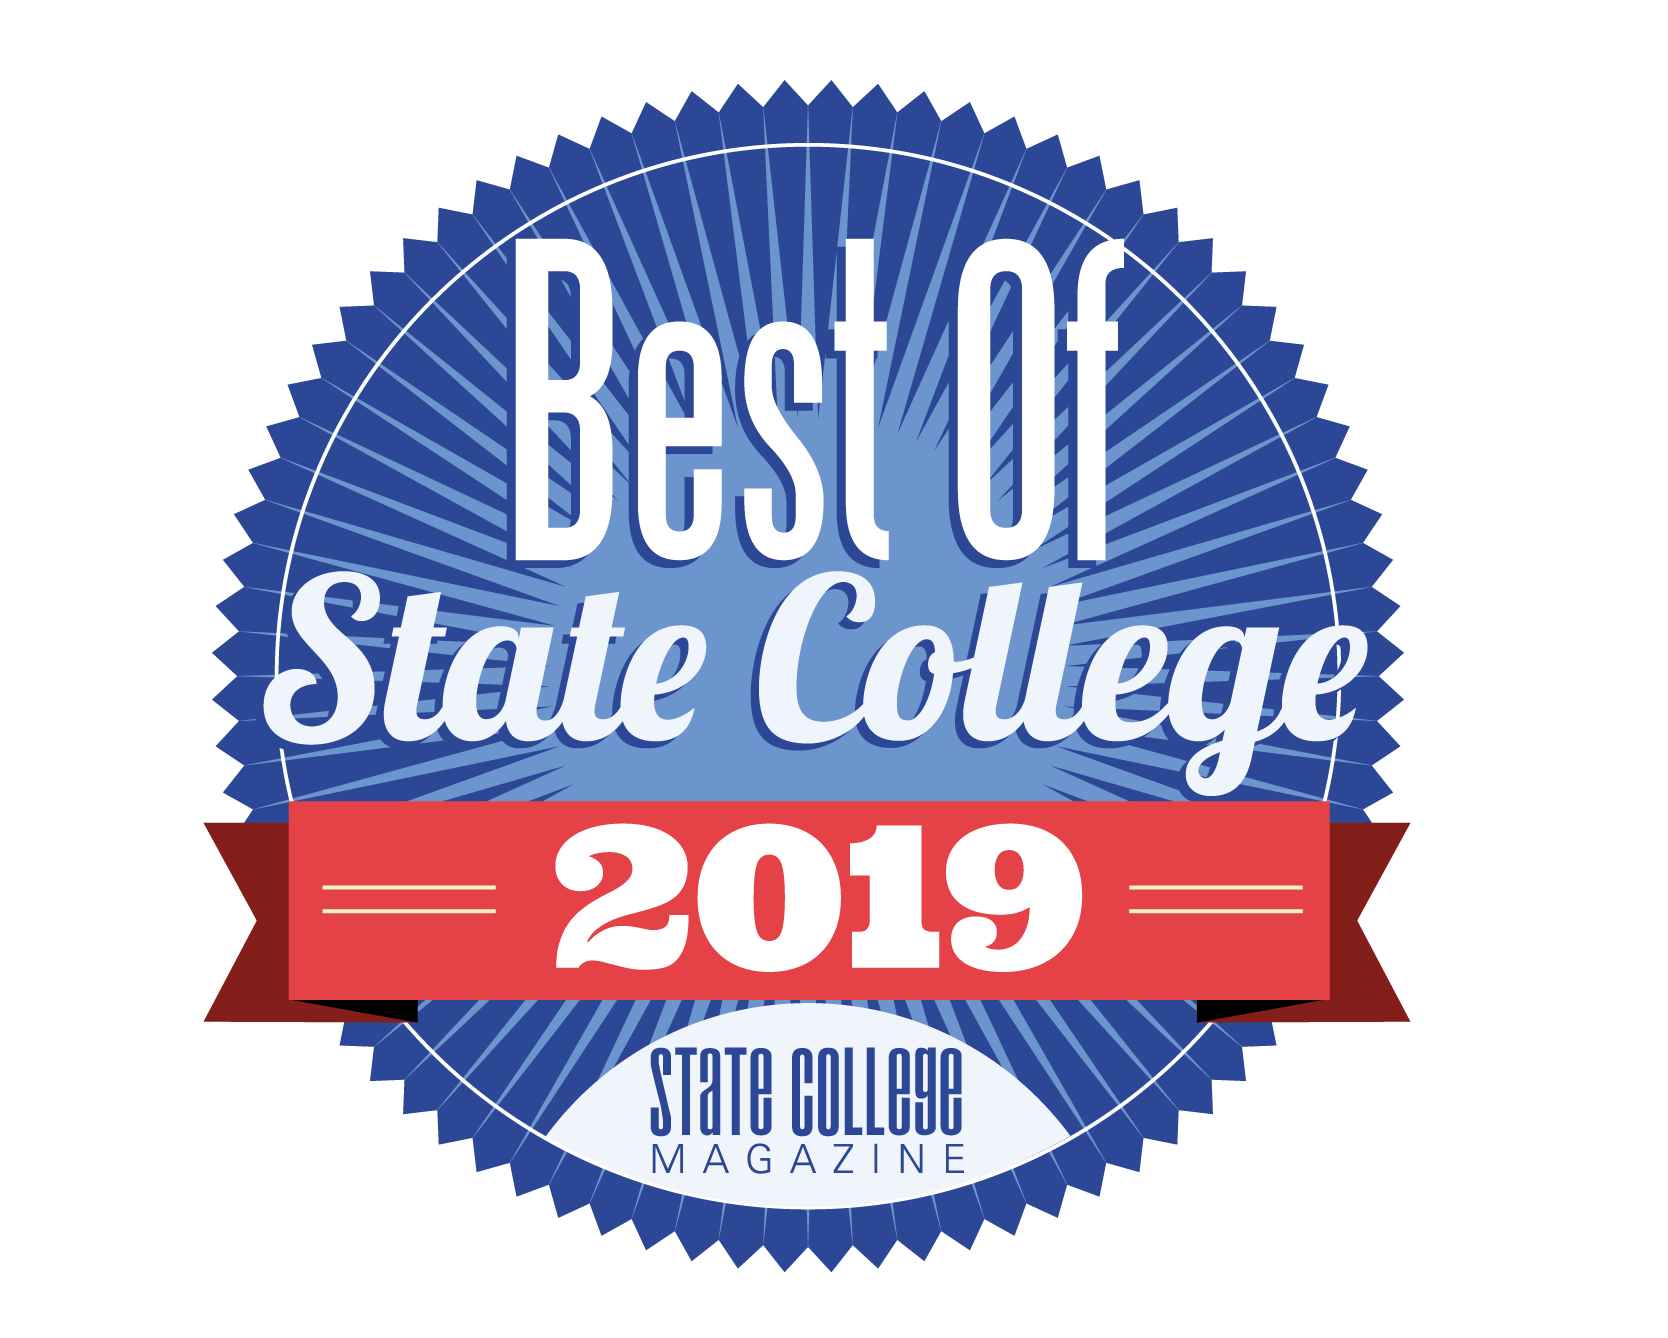 Best of State College | State College Magazine